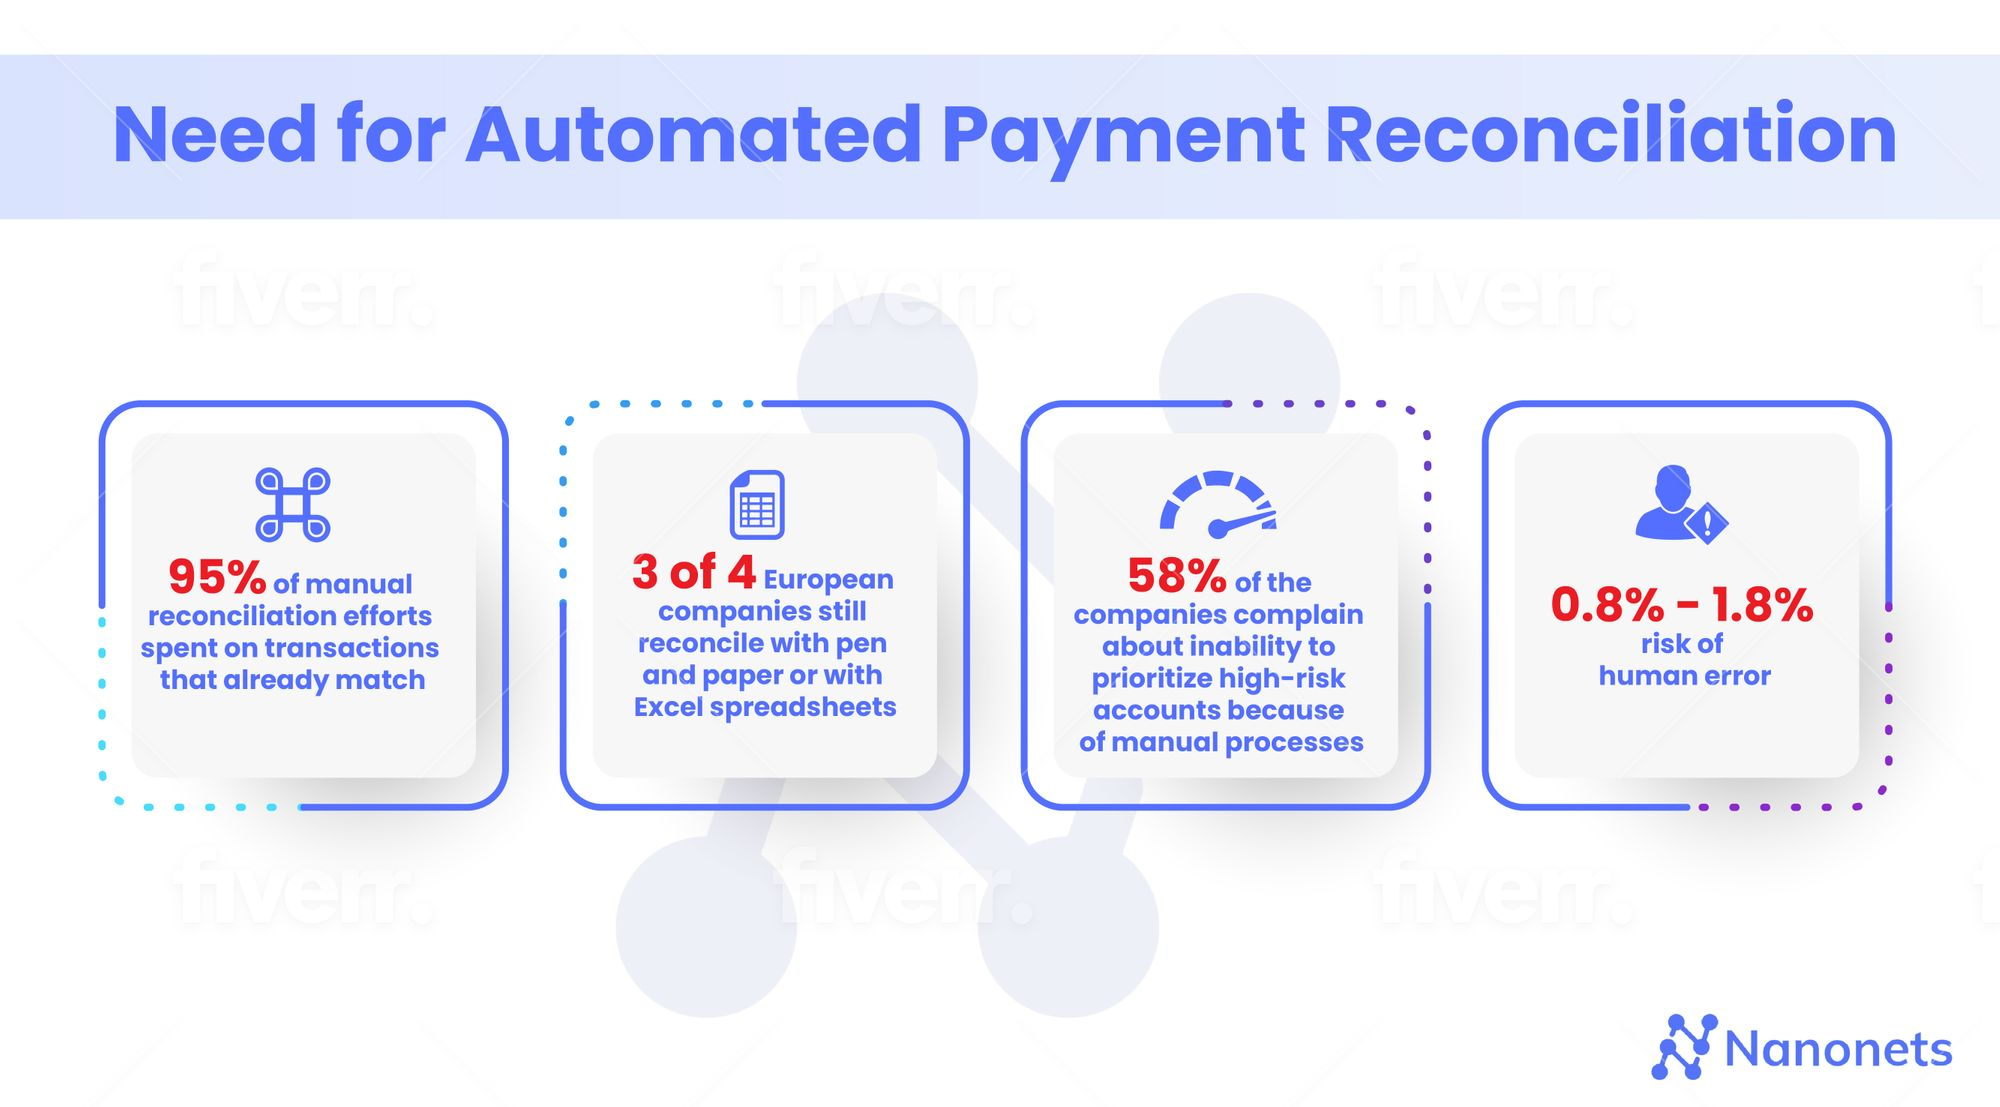 Need for Automating Payment Reconciliation